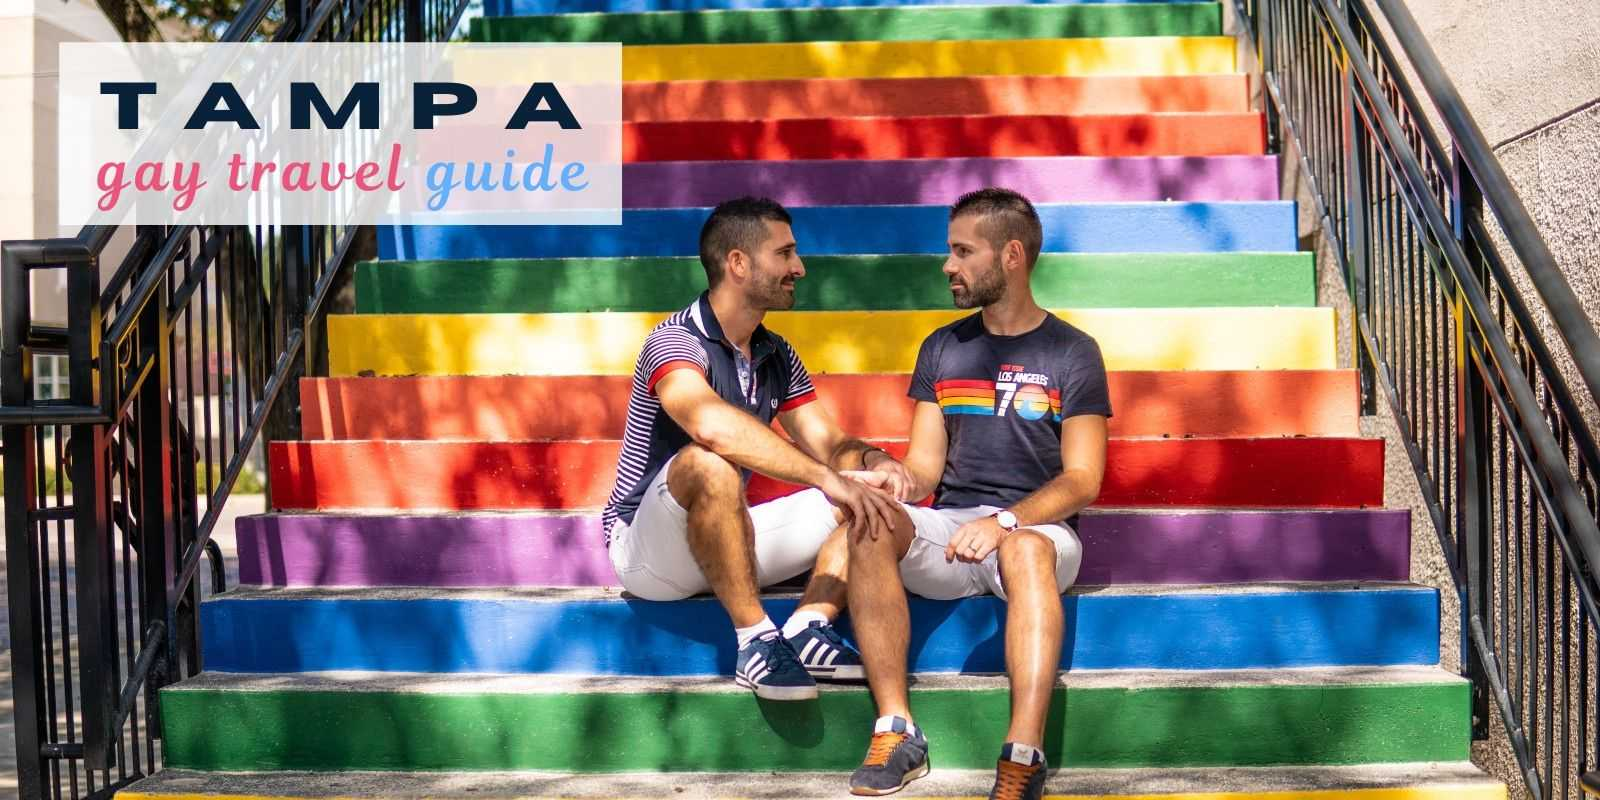 Our gay travel guide to Tampa, a great spot in the US for a gay vacation